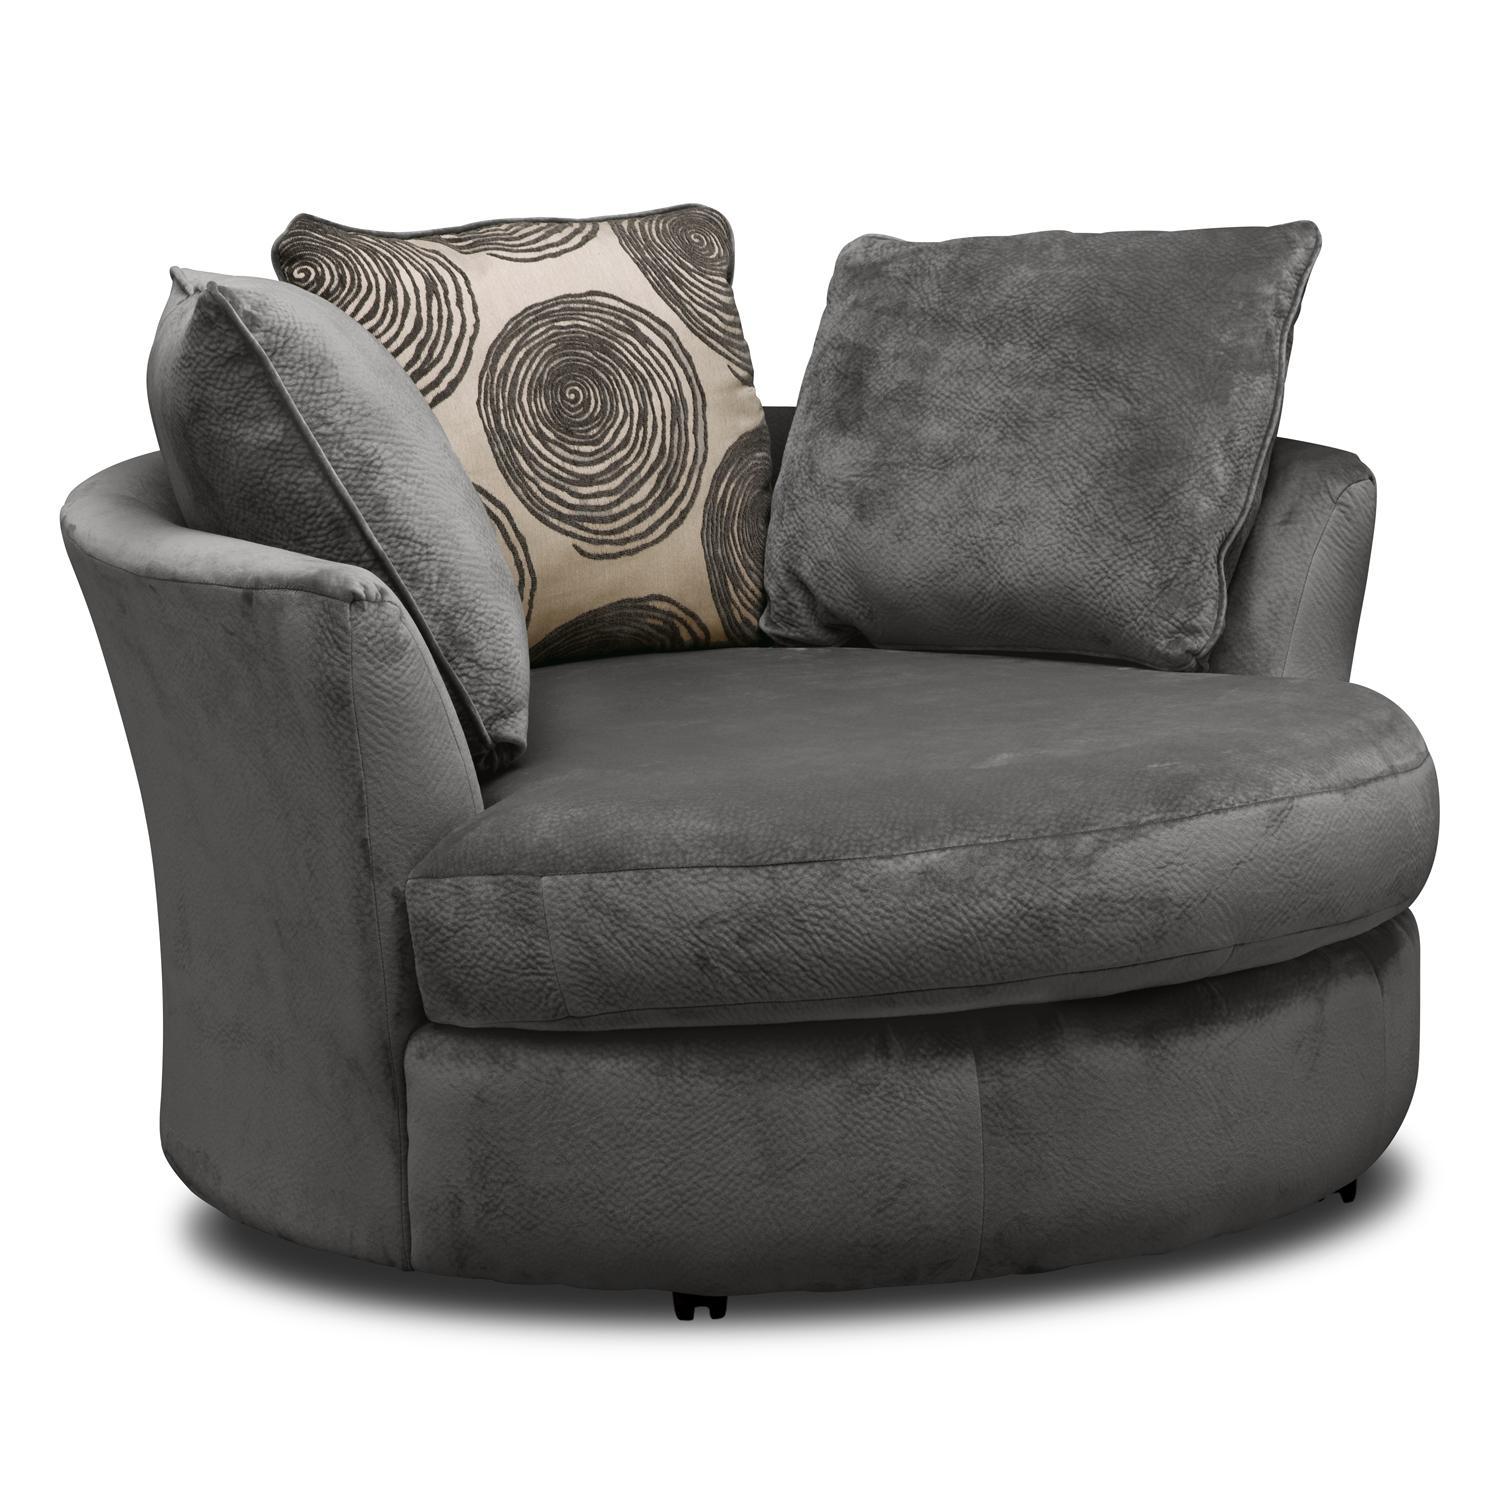 20 Best Ideas Circular Sofa Chairs  Sofa Ideas